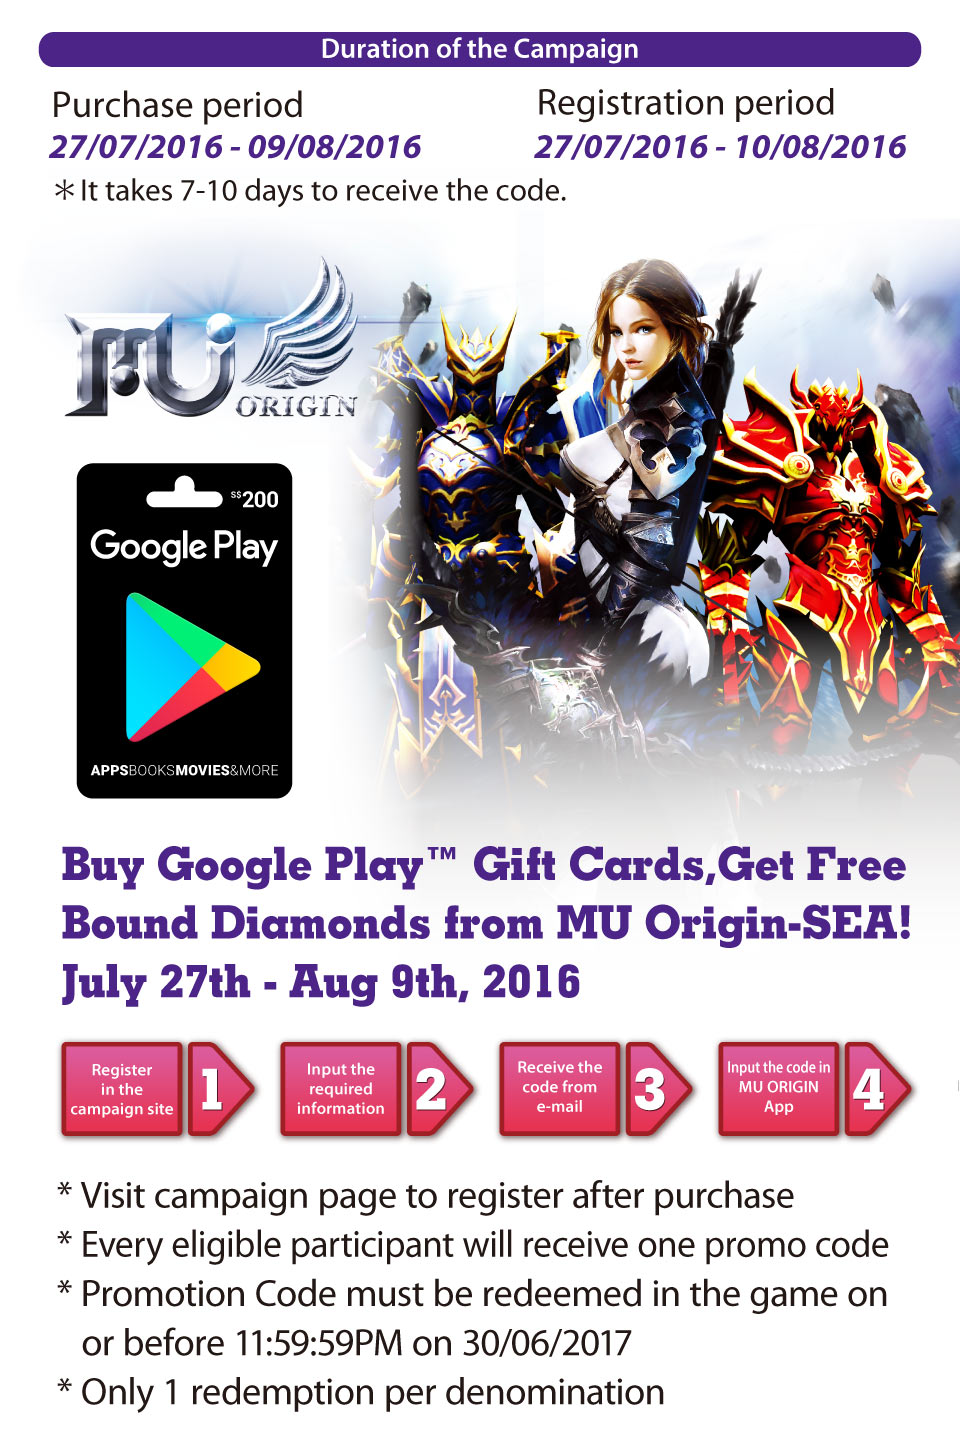 7-Eleven MU Online Google Play Gift Card Singapore Promotion 27 Jul to 9 Aug 2016 | Why Not Deals 2 & Promotions